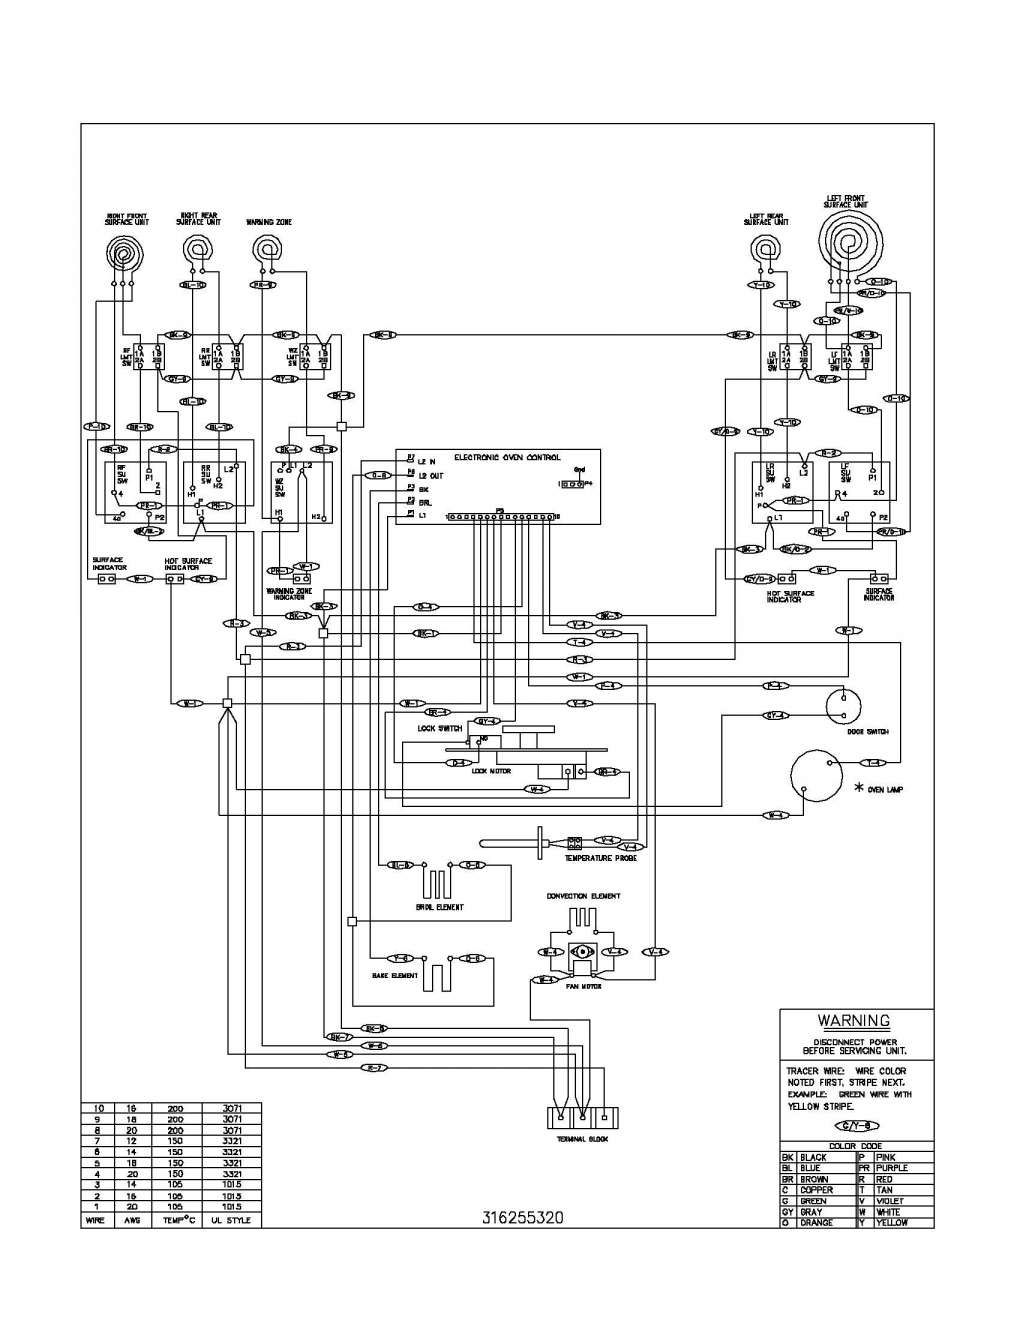 10 Ge Electric Cooktop Wiring Diagram Wiring Diagram In 2020